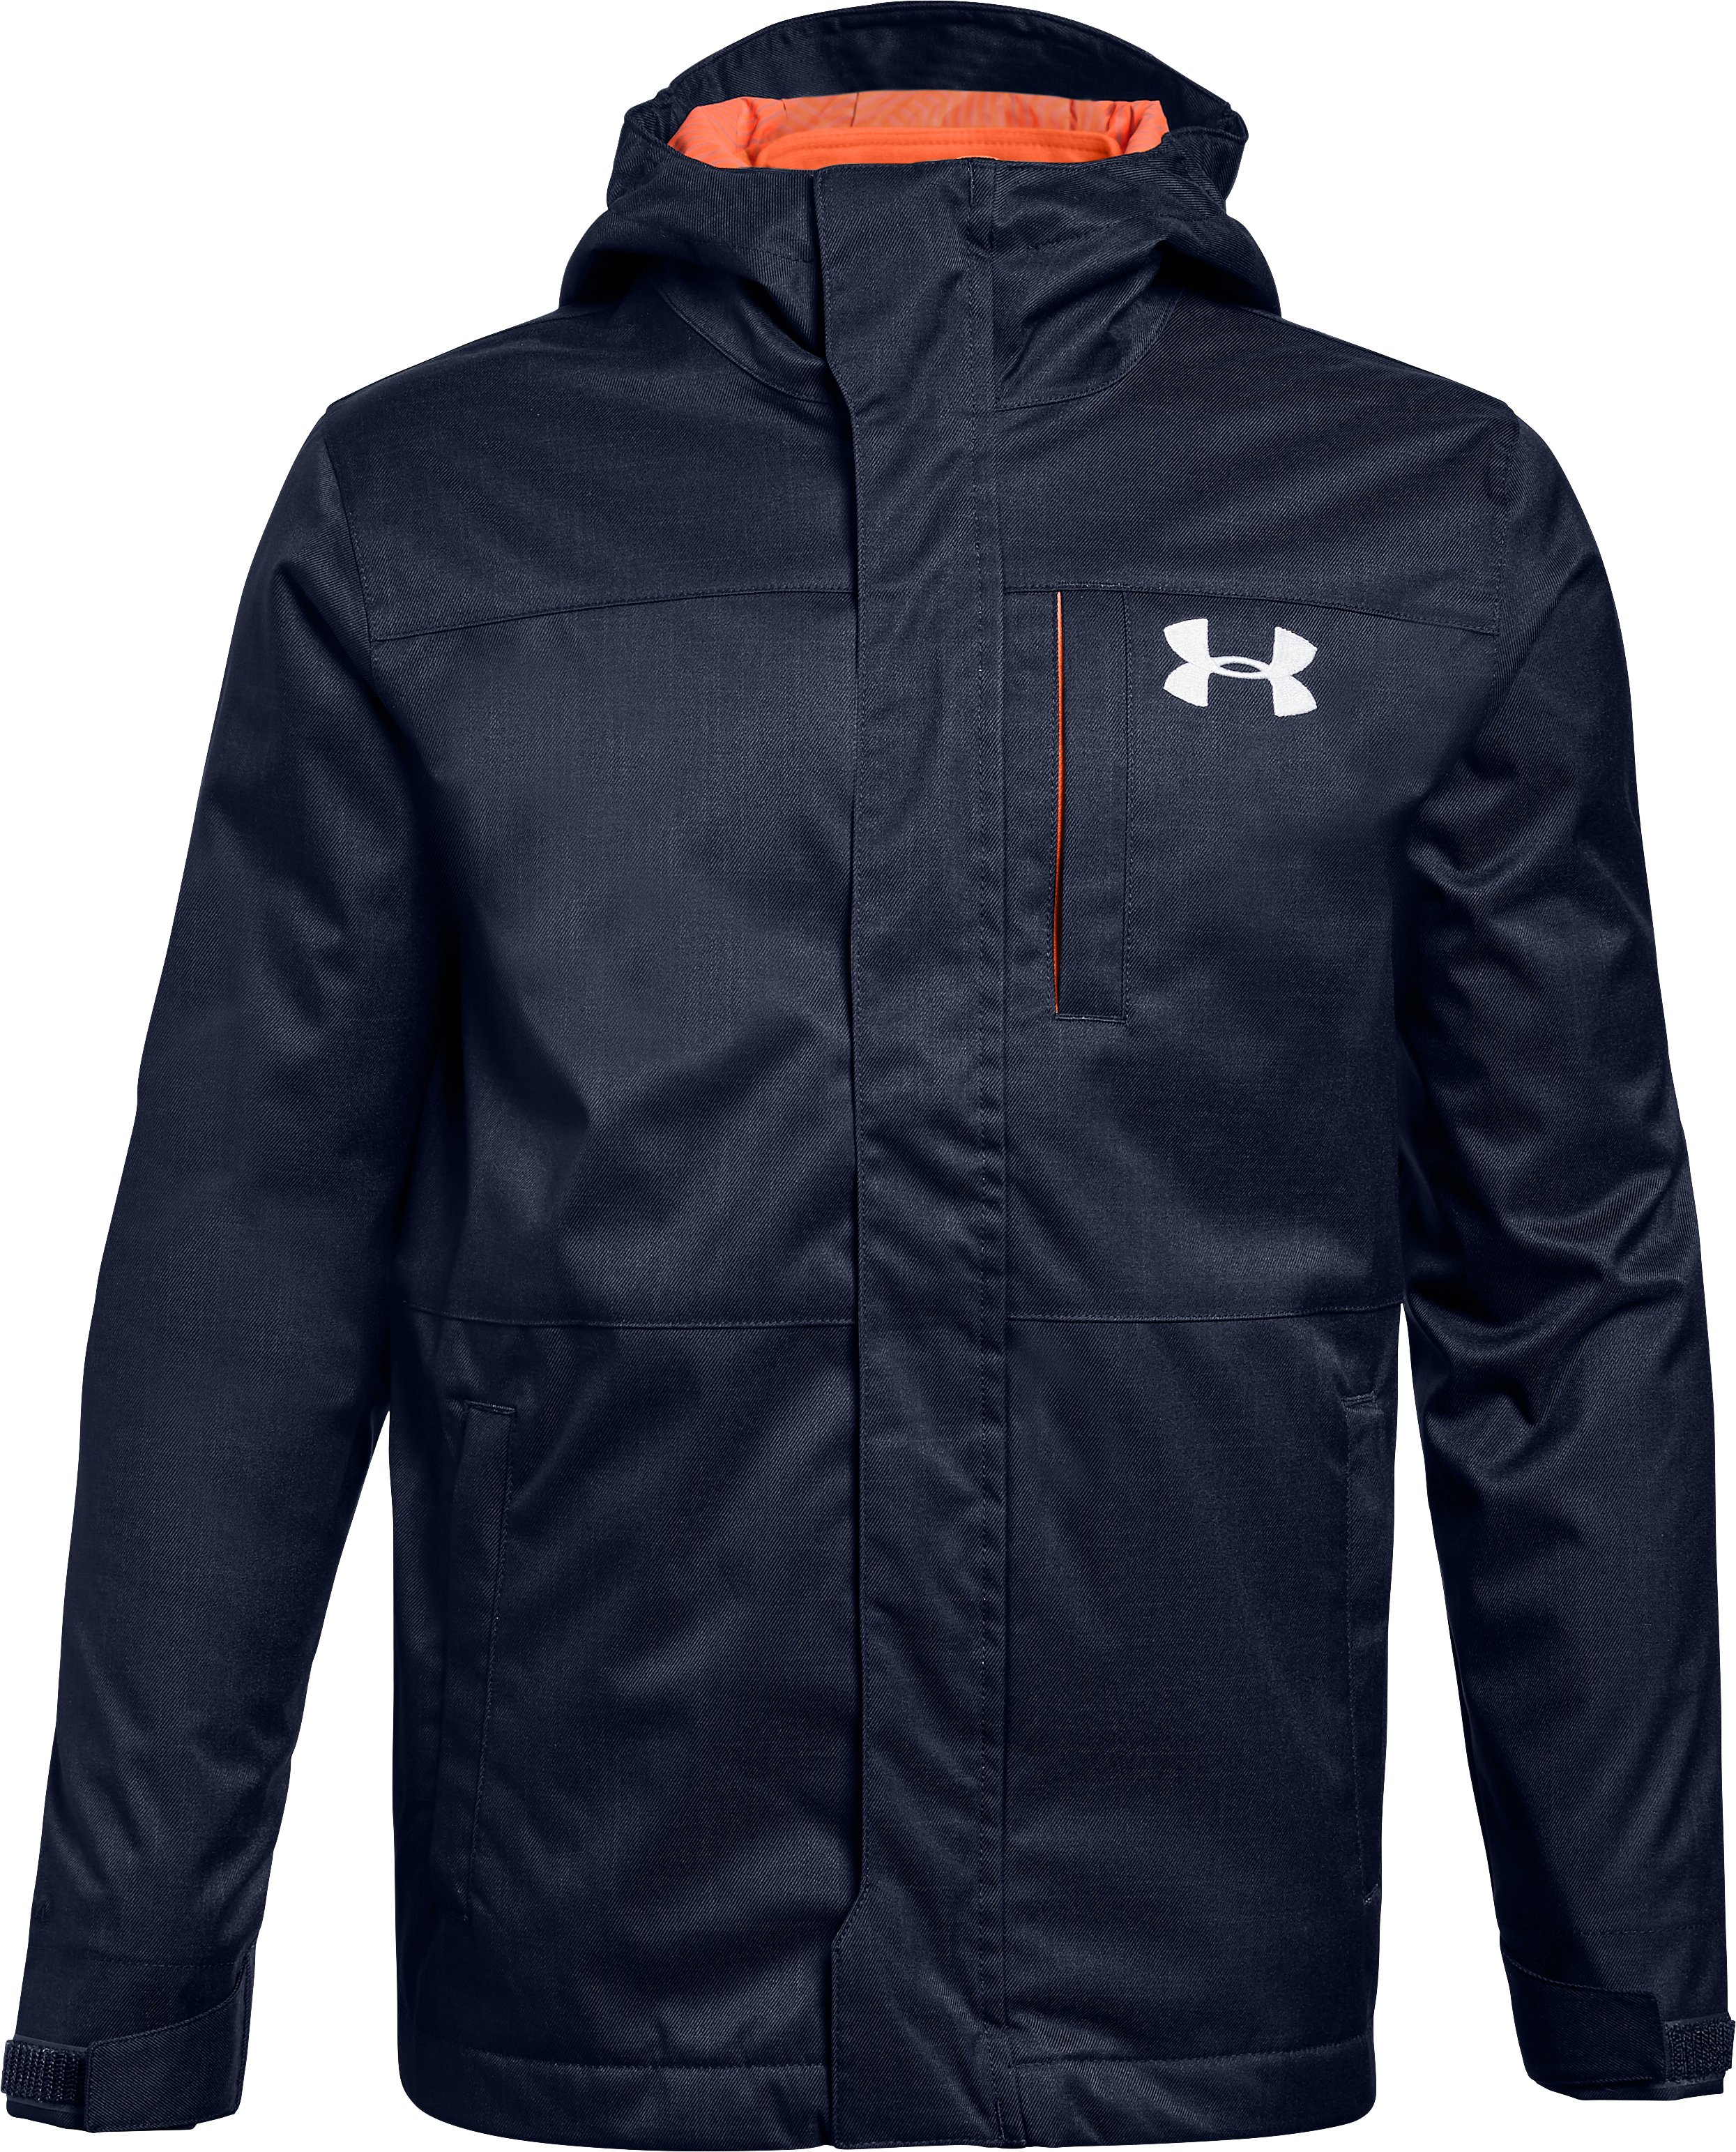 Boys' UA Storm Wildwood 3-in-1 Jacket, Midnight Navy,